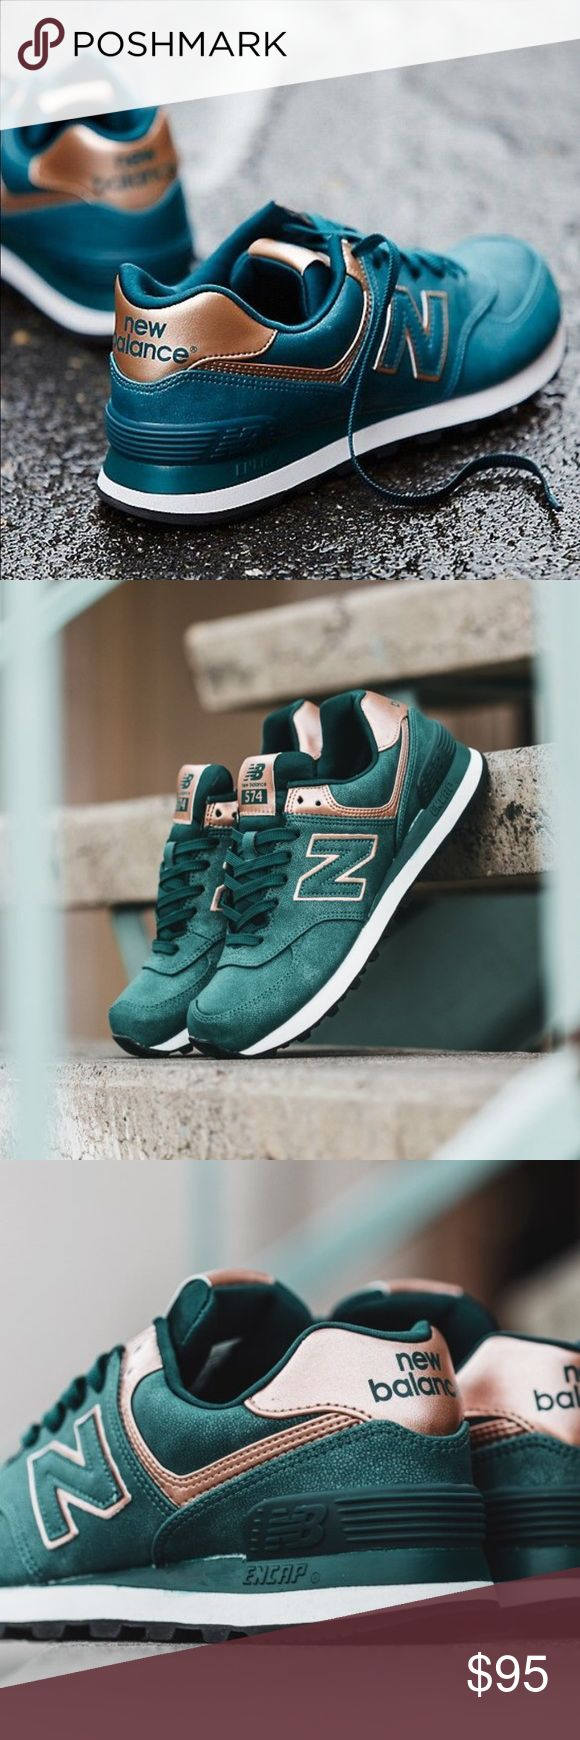 "New Balance 574 sneakers in emerald and rose gold New Balance 574 sneakers in emerald and rose gold. ""Precious Metals"" line. Hard to find size and color. Selling for $120+ on other sites. Brand new in box. No trades. No PayPal. Additional photos coming soon. New Balance Shoes Athletic Shoes"